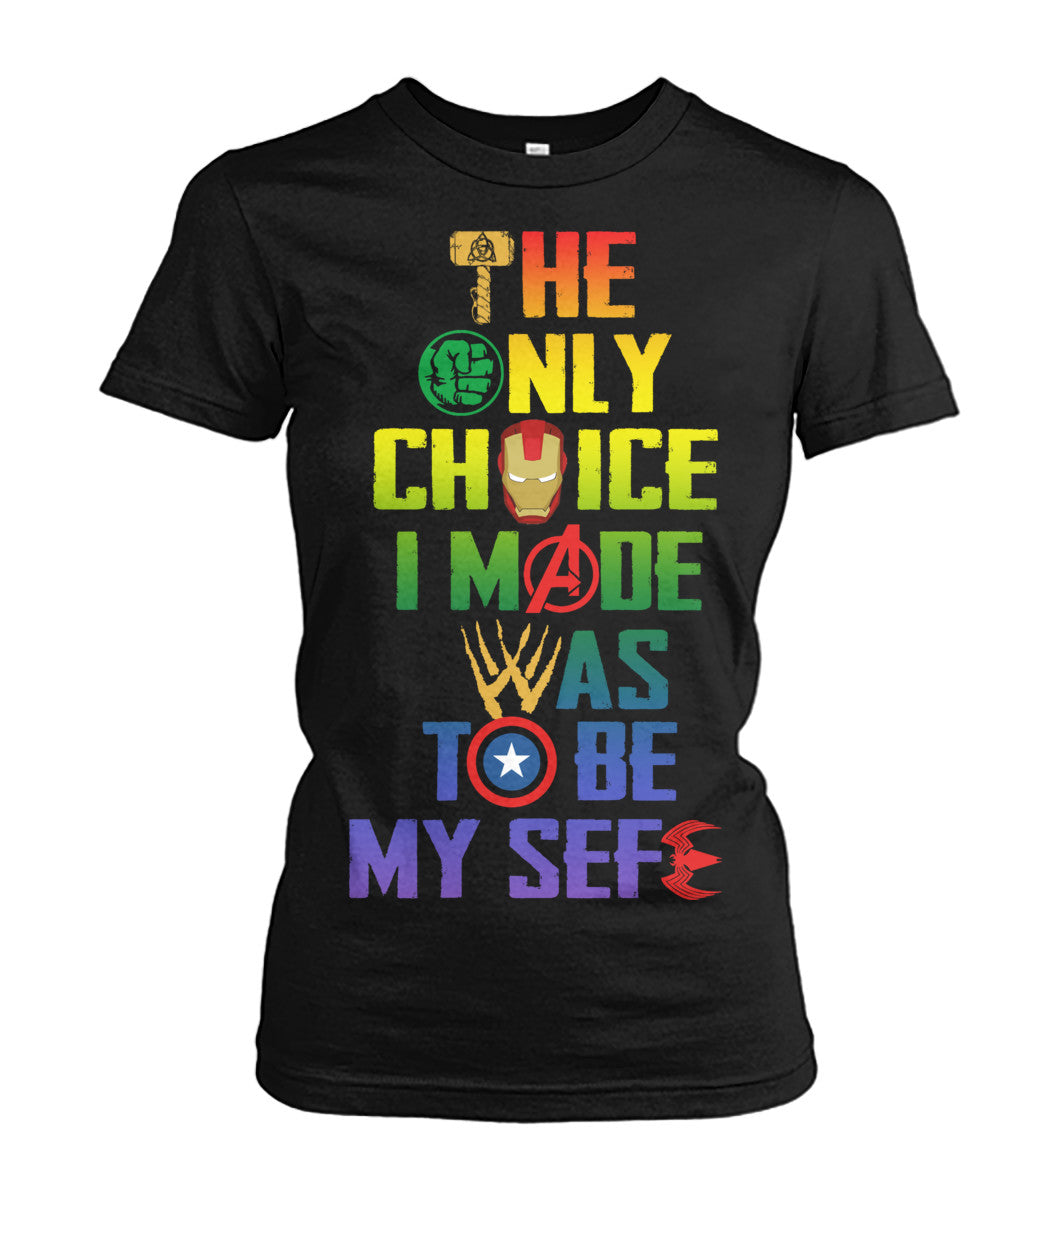 LBGT Couple Marvel Shirt 2018